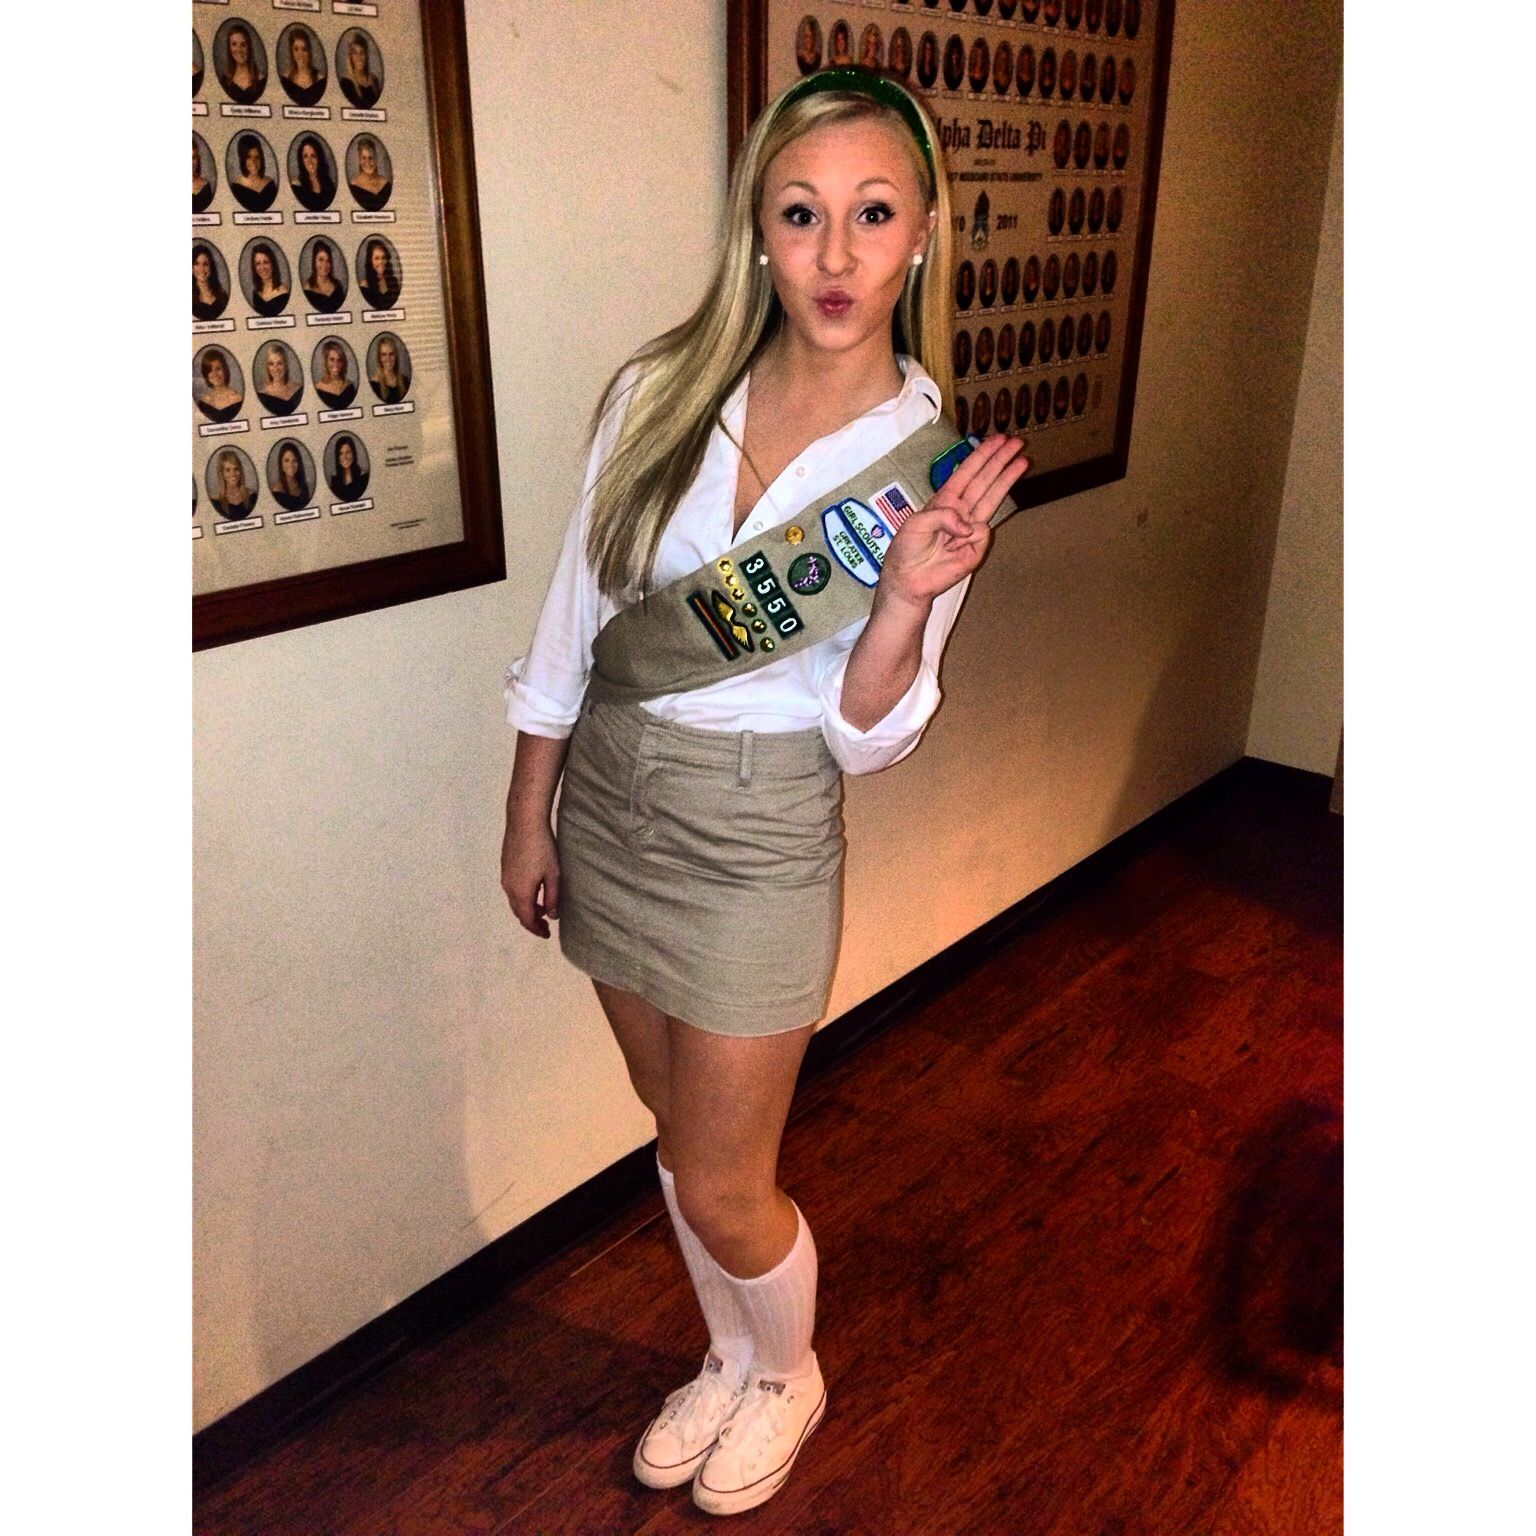 The ULTIMATE COLLEGE HALLOWEEN COSTUMES FOR 2020 & 2021, Hot Girl Scout